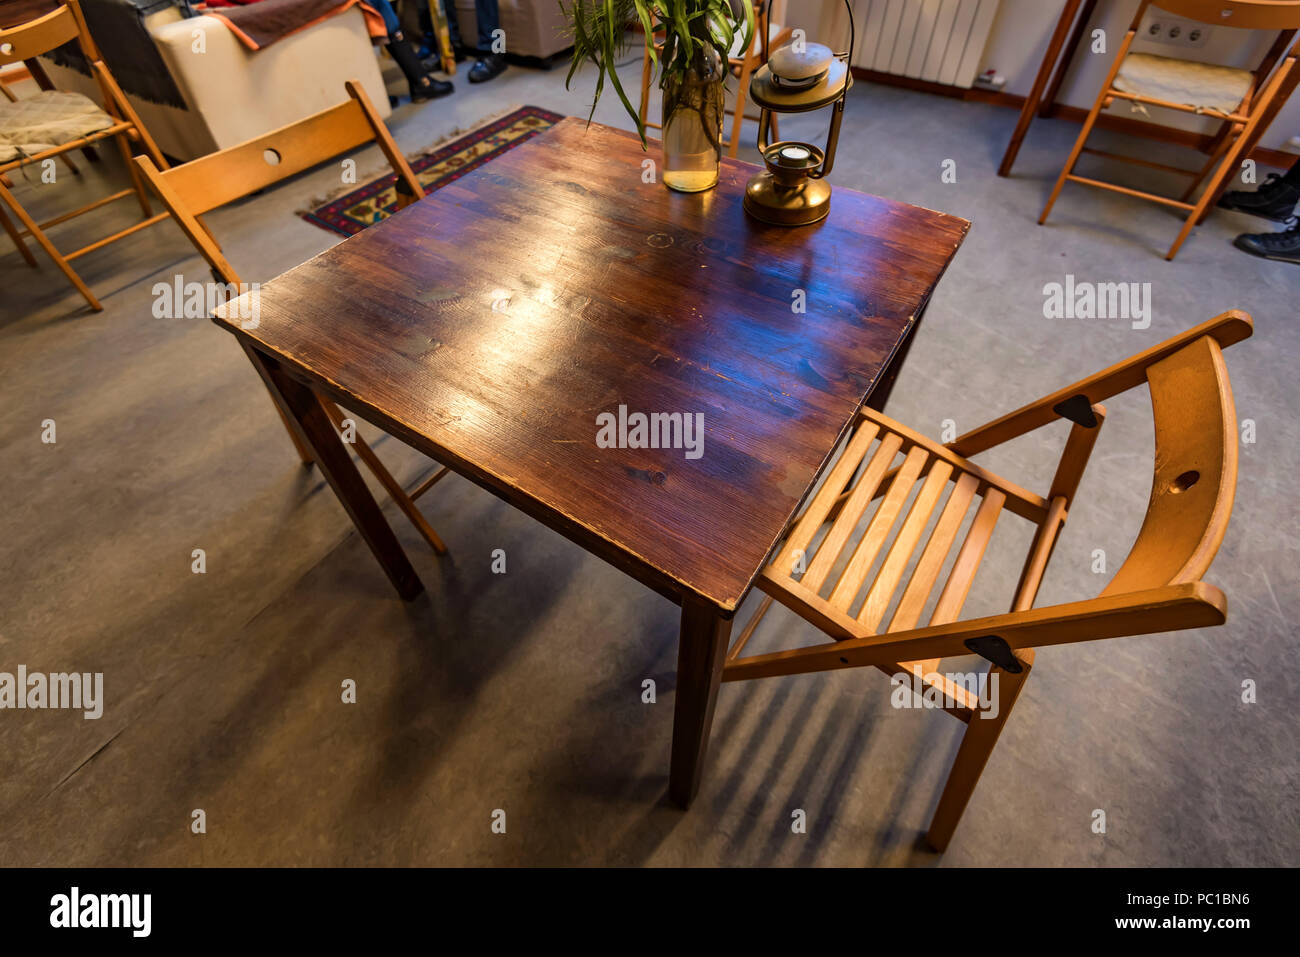 Small Wooden Table For Two In Restaurant